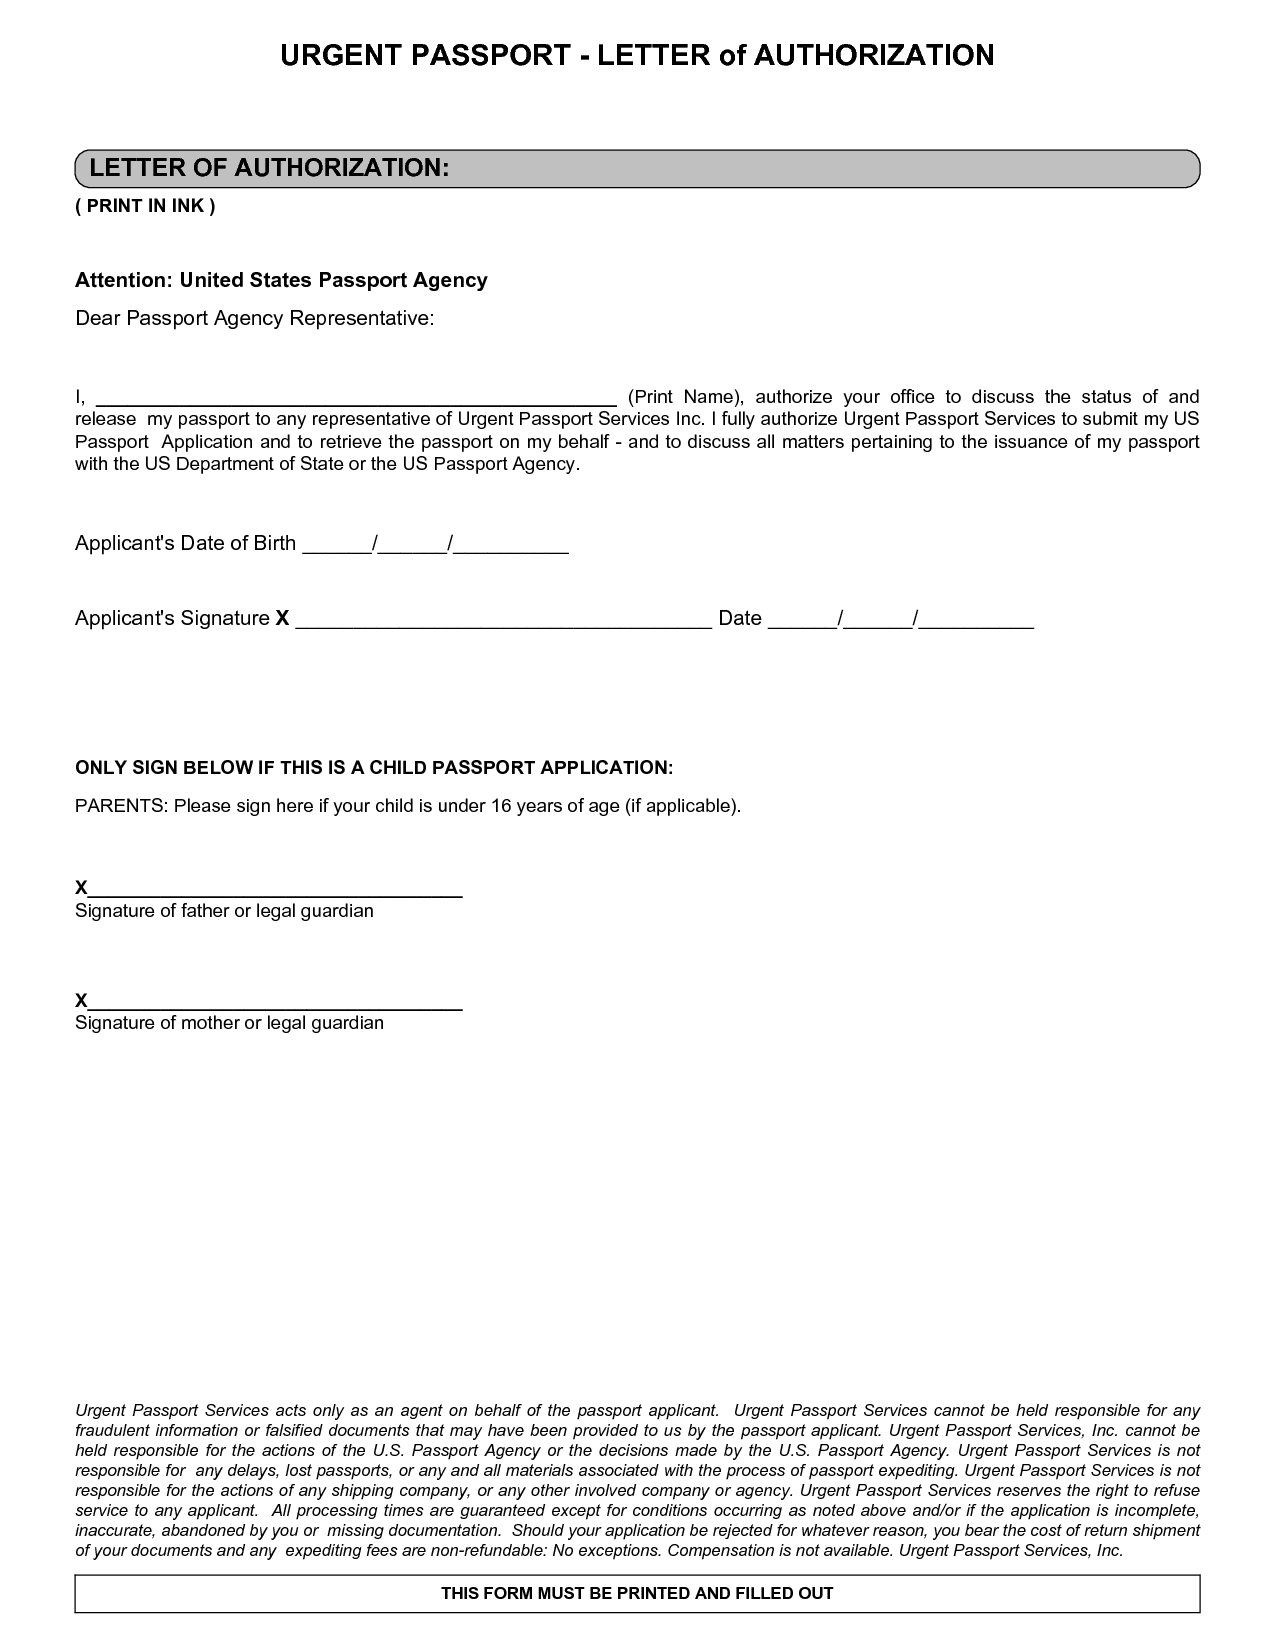 Letter Notarized Parental Authorization Sample Receive Passport For Notarized Letter Template For Child Travel